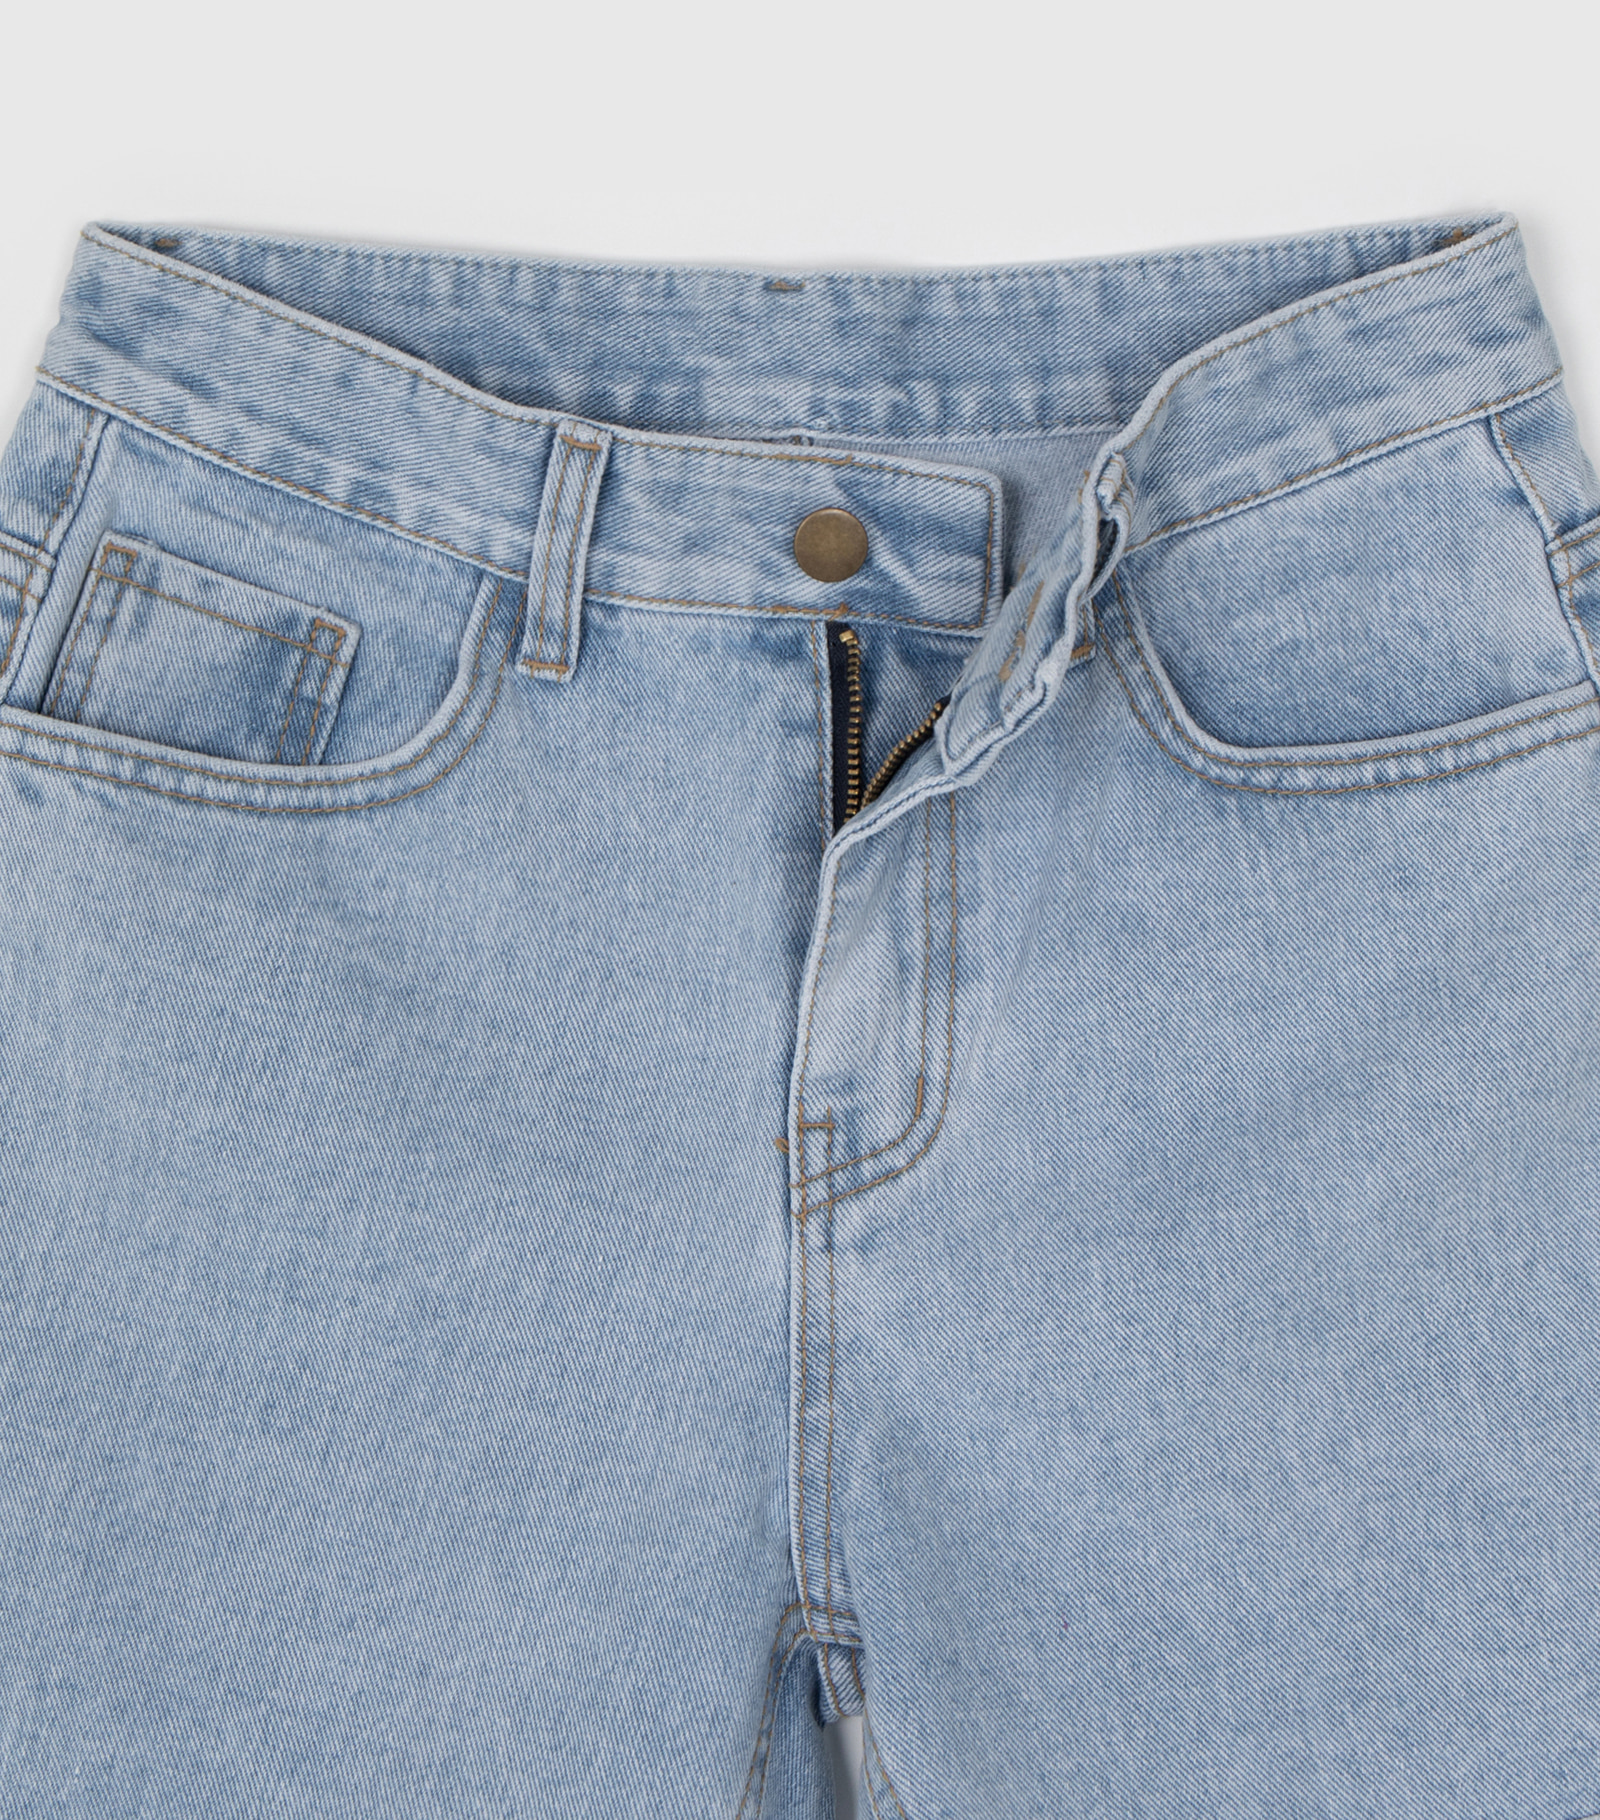 Daily natural half jeans